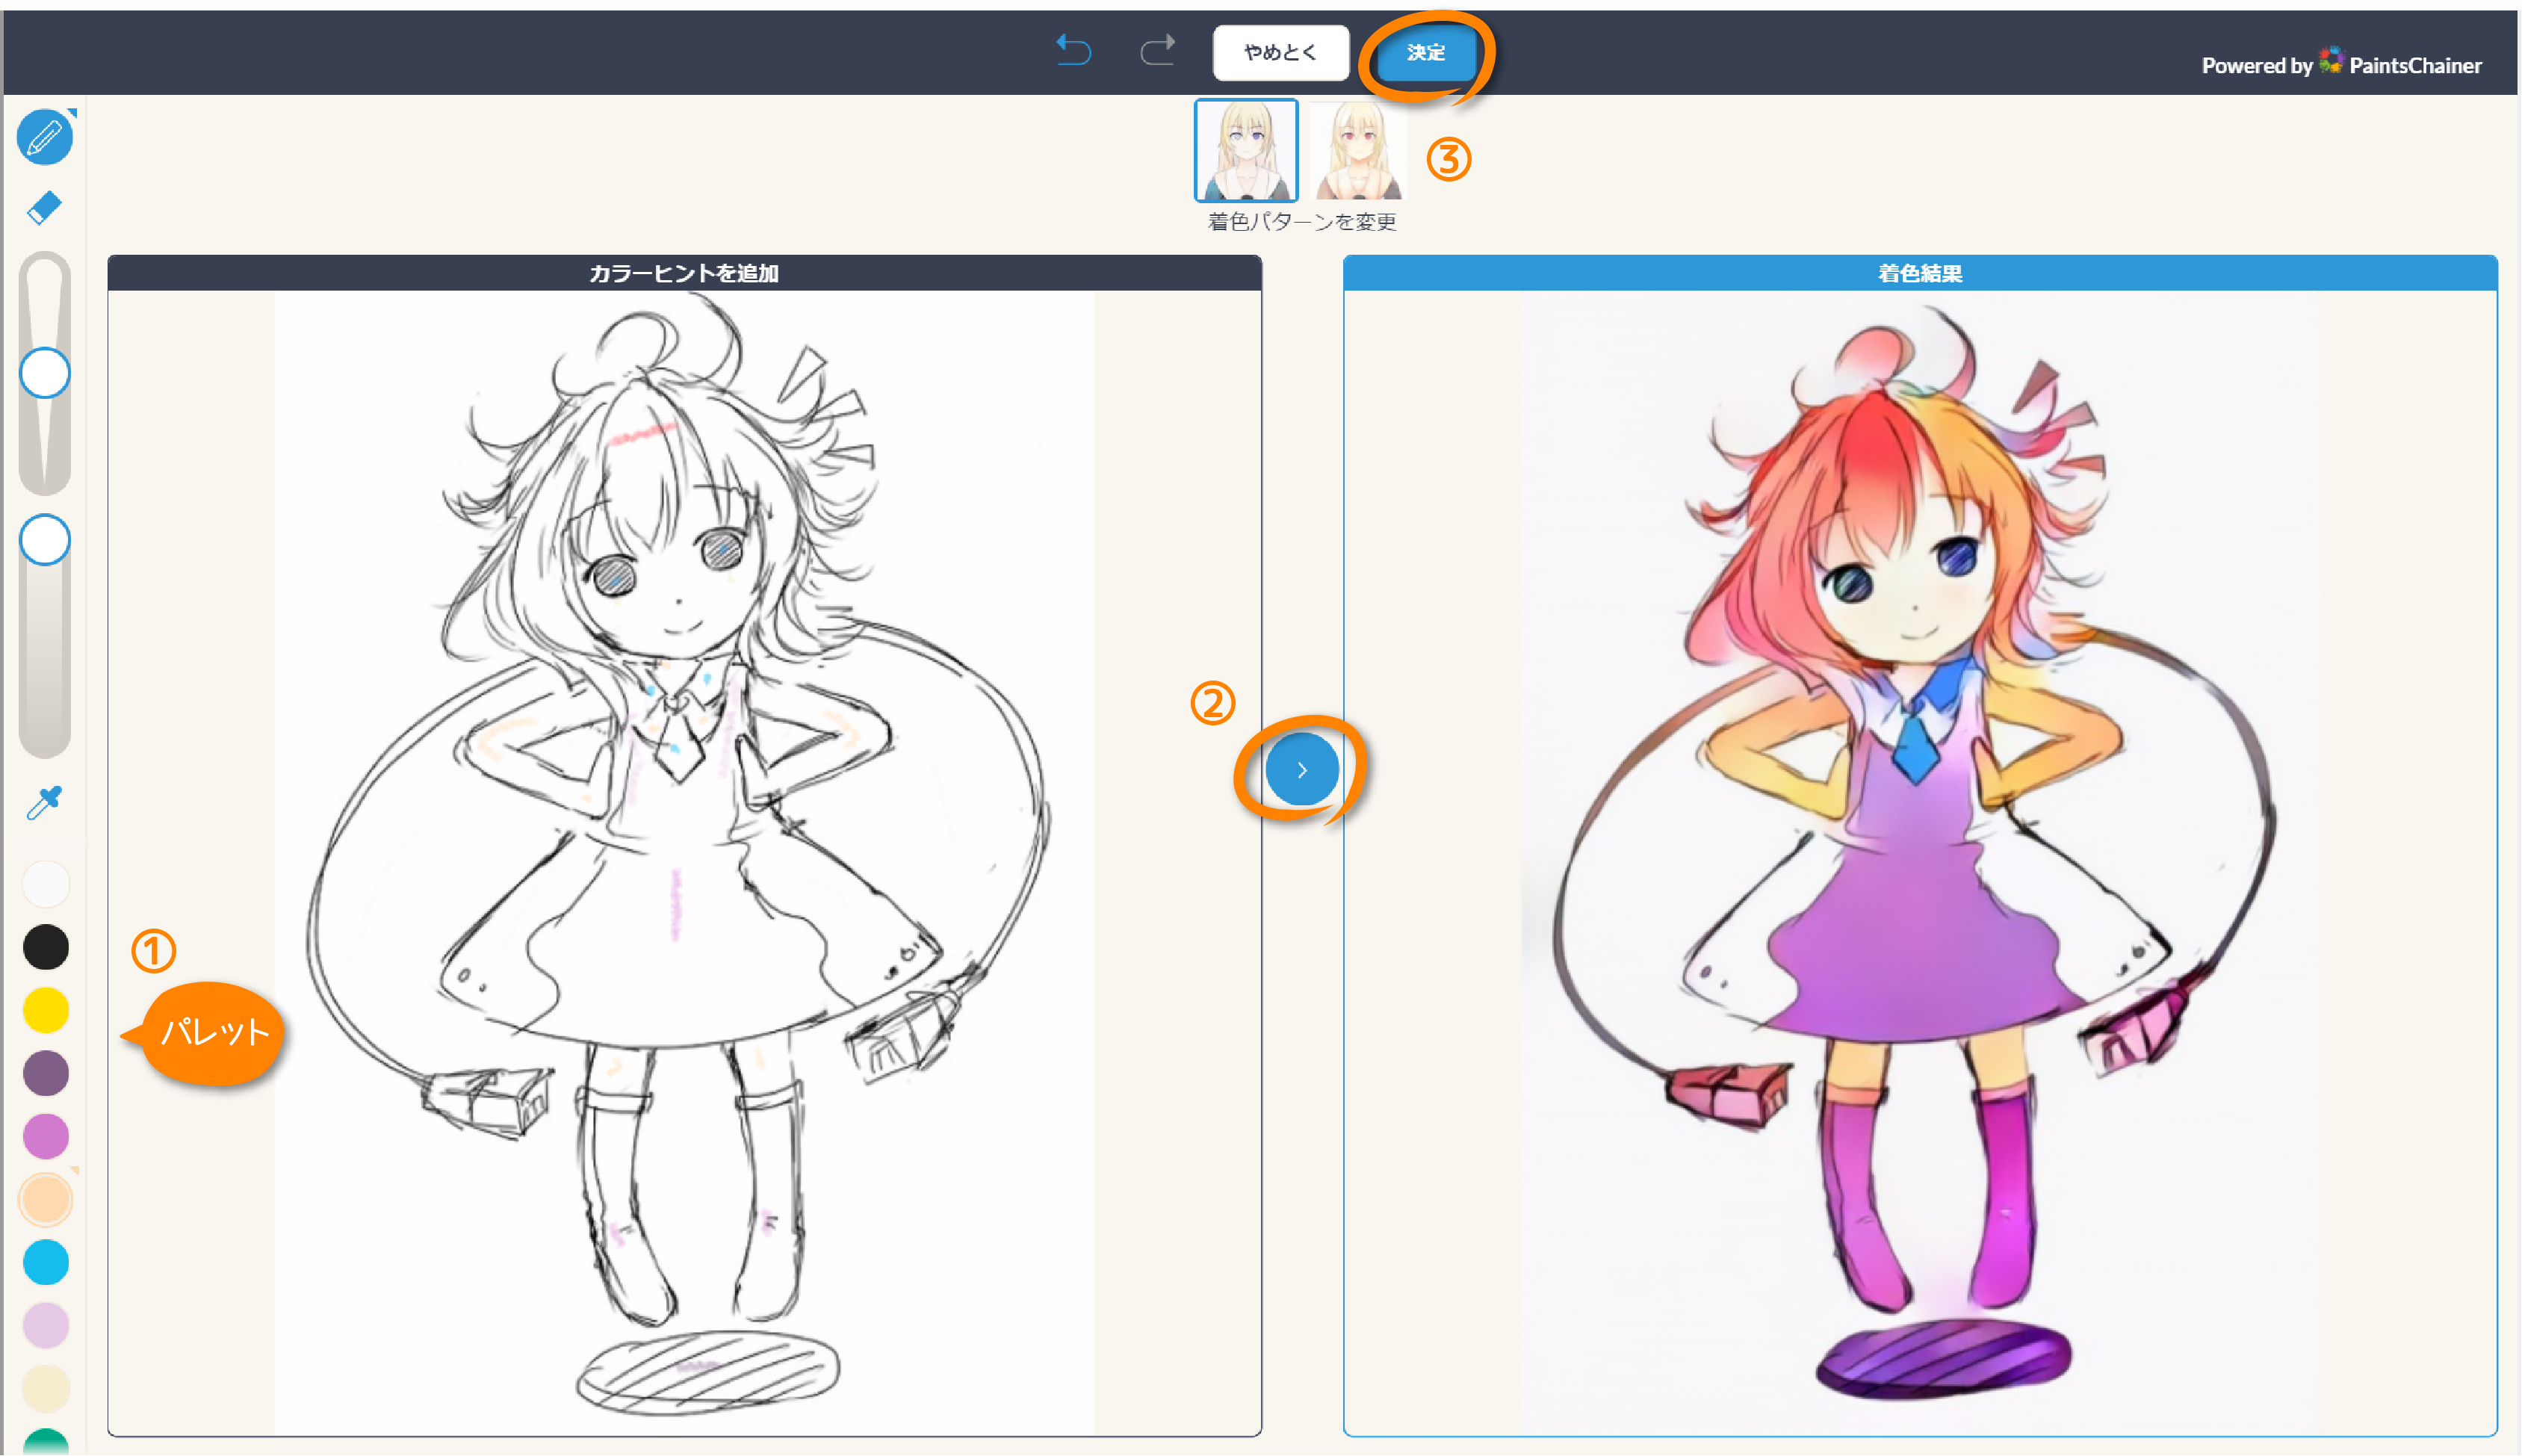 Add hint information using color pen in left image, and click '>' botton to recolorize. Then, click 'OK' button to go back